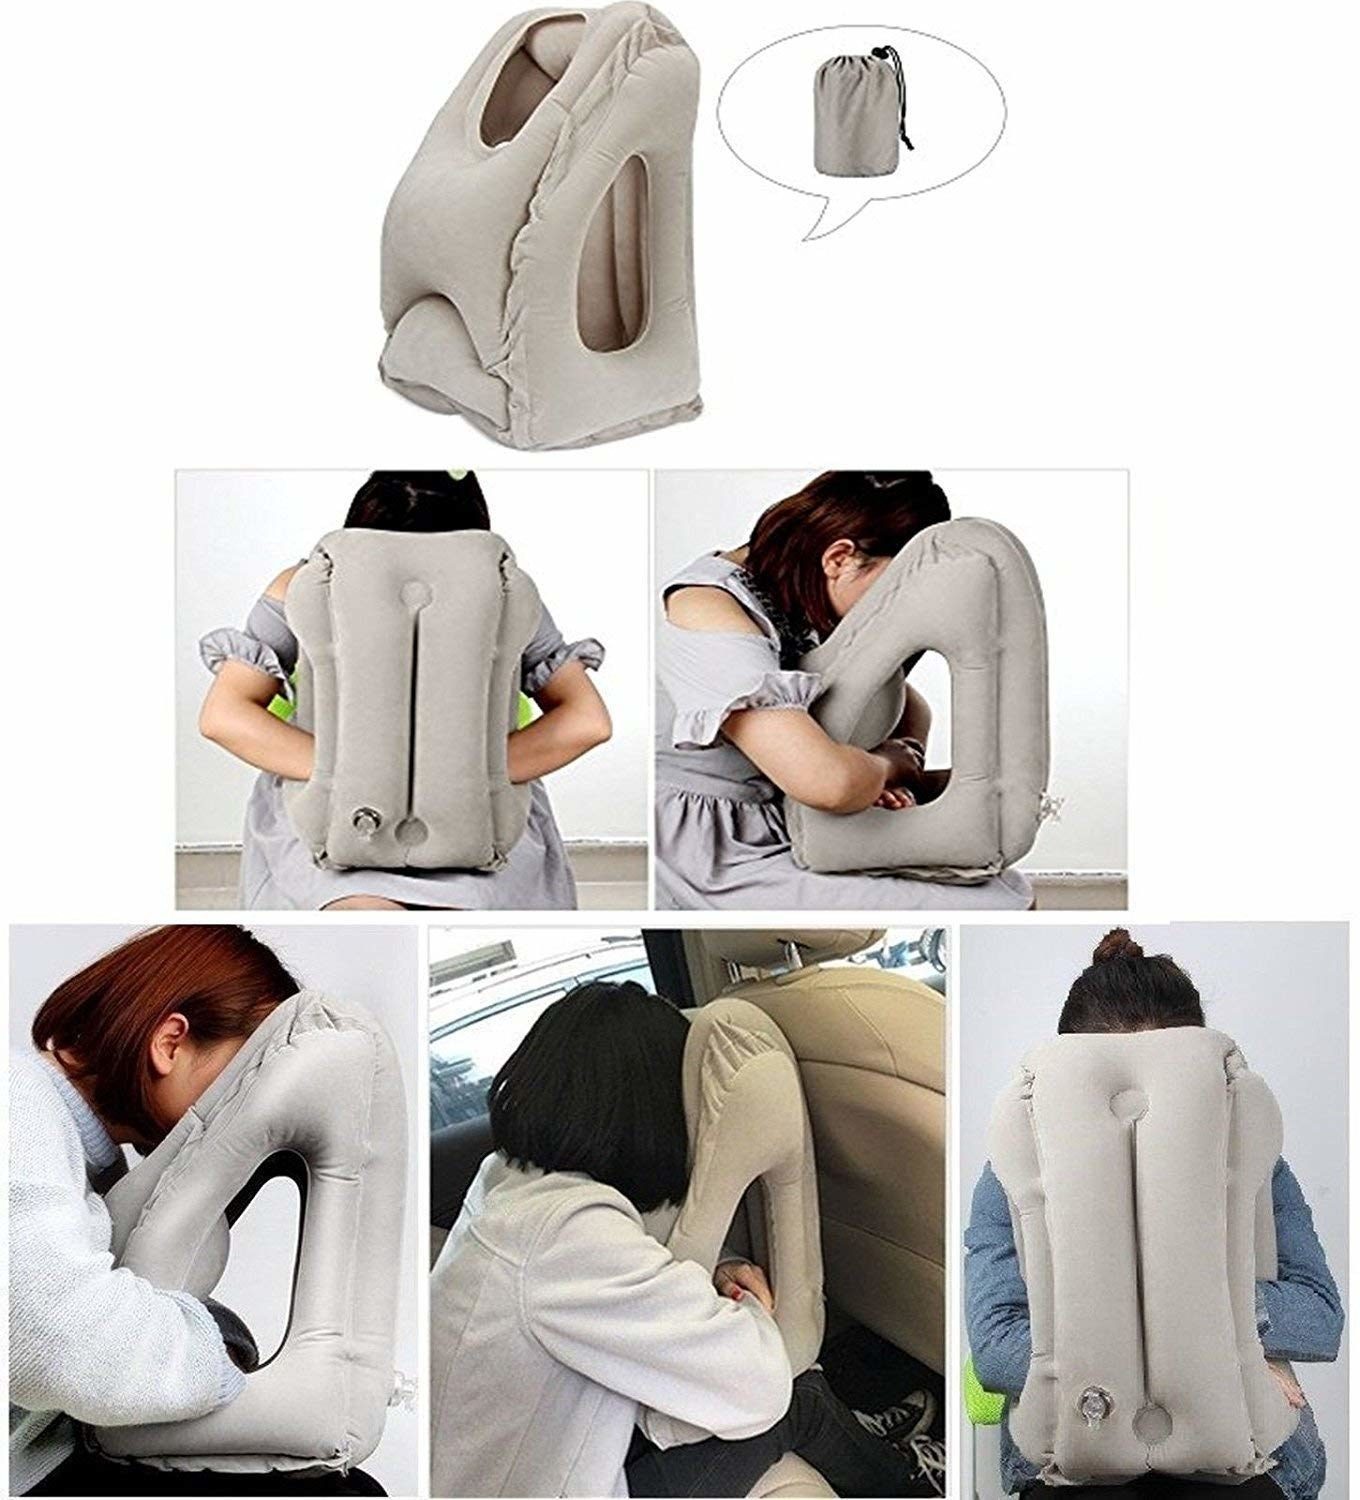 A collage of images showing a person in various settings using the neck rest.